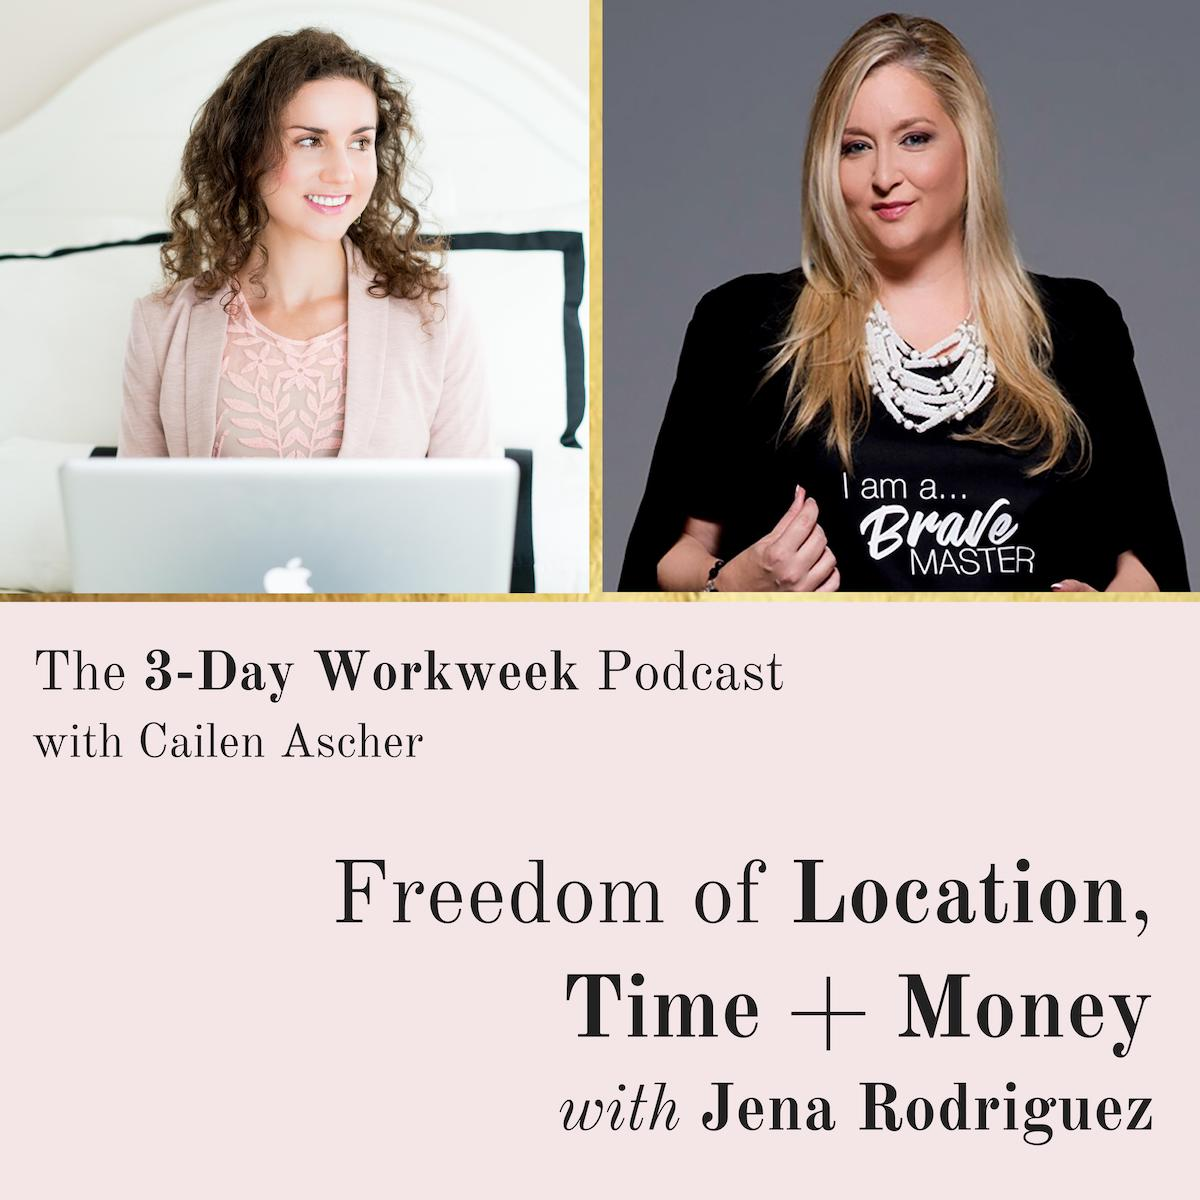 The 3-Day Workweek Podcast with Cailen Ascher - 2019-04-24 - Freedom of Location, Time, and Money with Jena Rodriguez.jpg